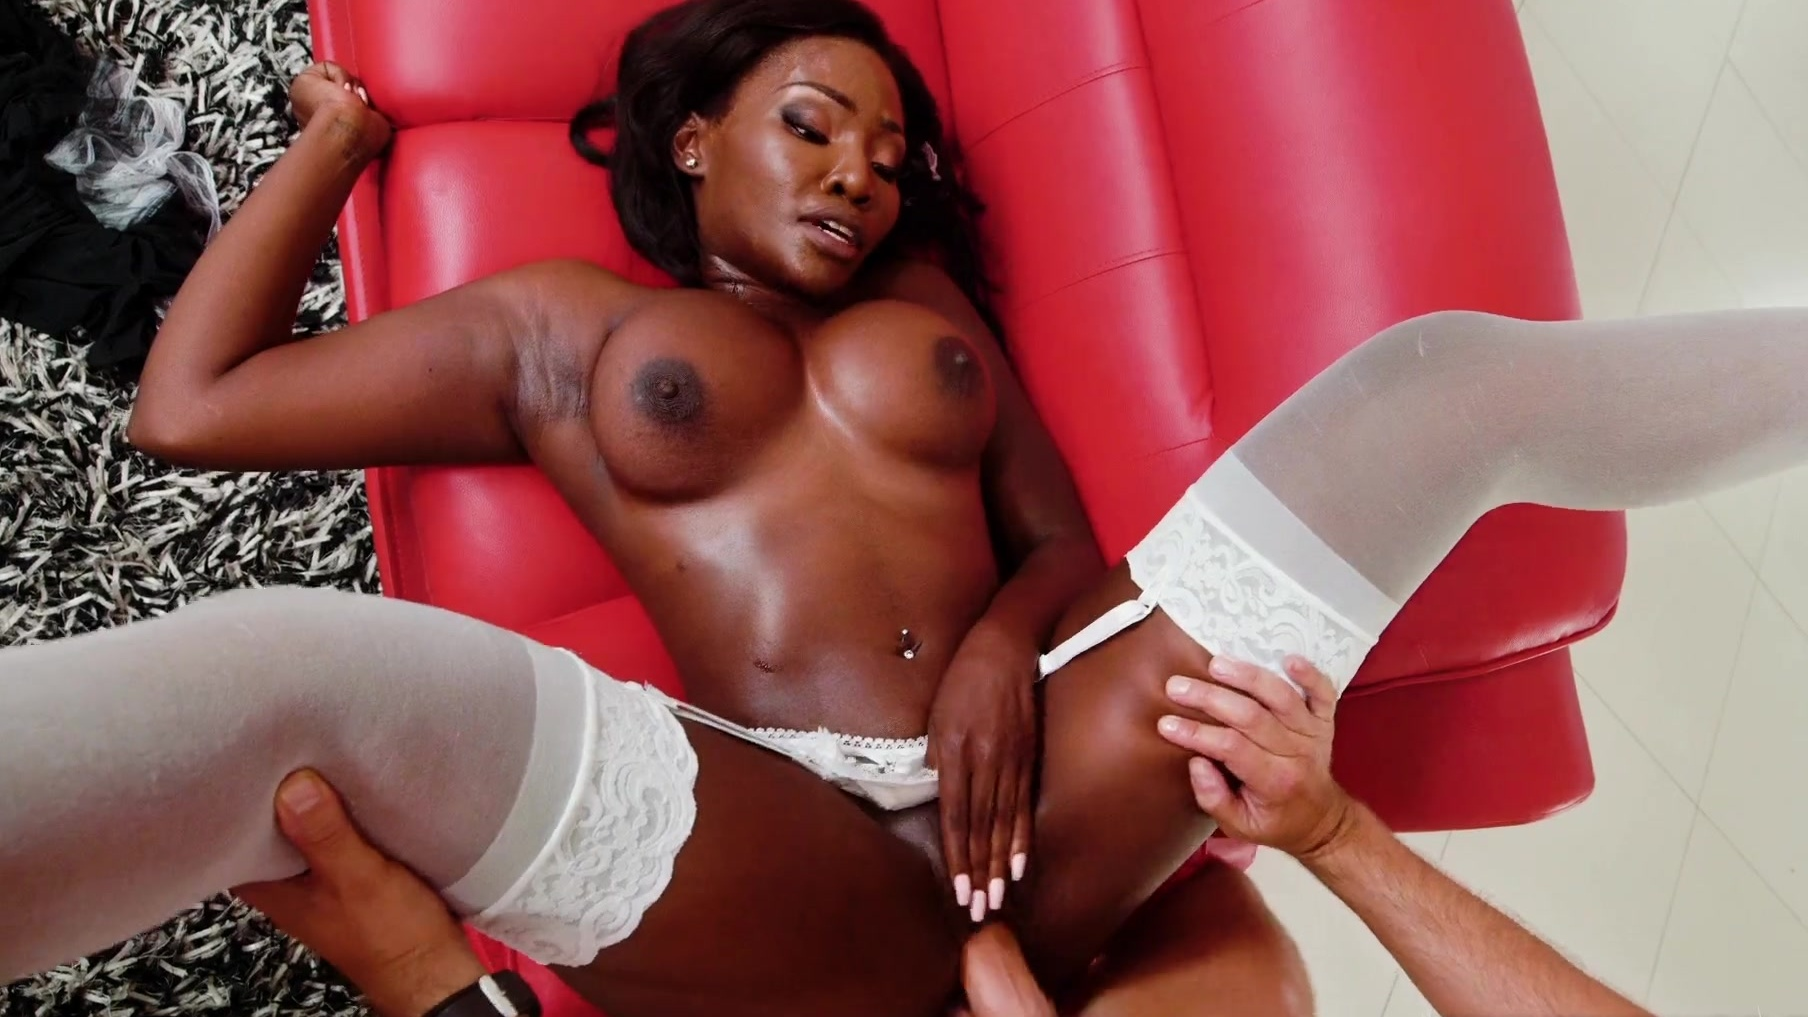 Ebony Cutie Sucking Dick